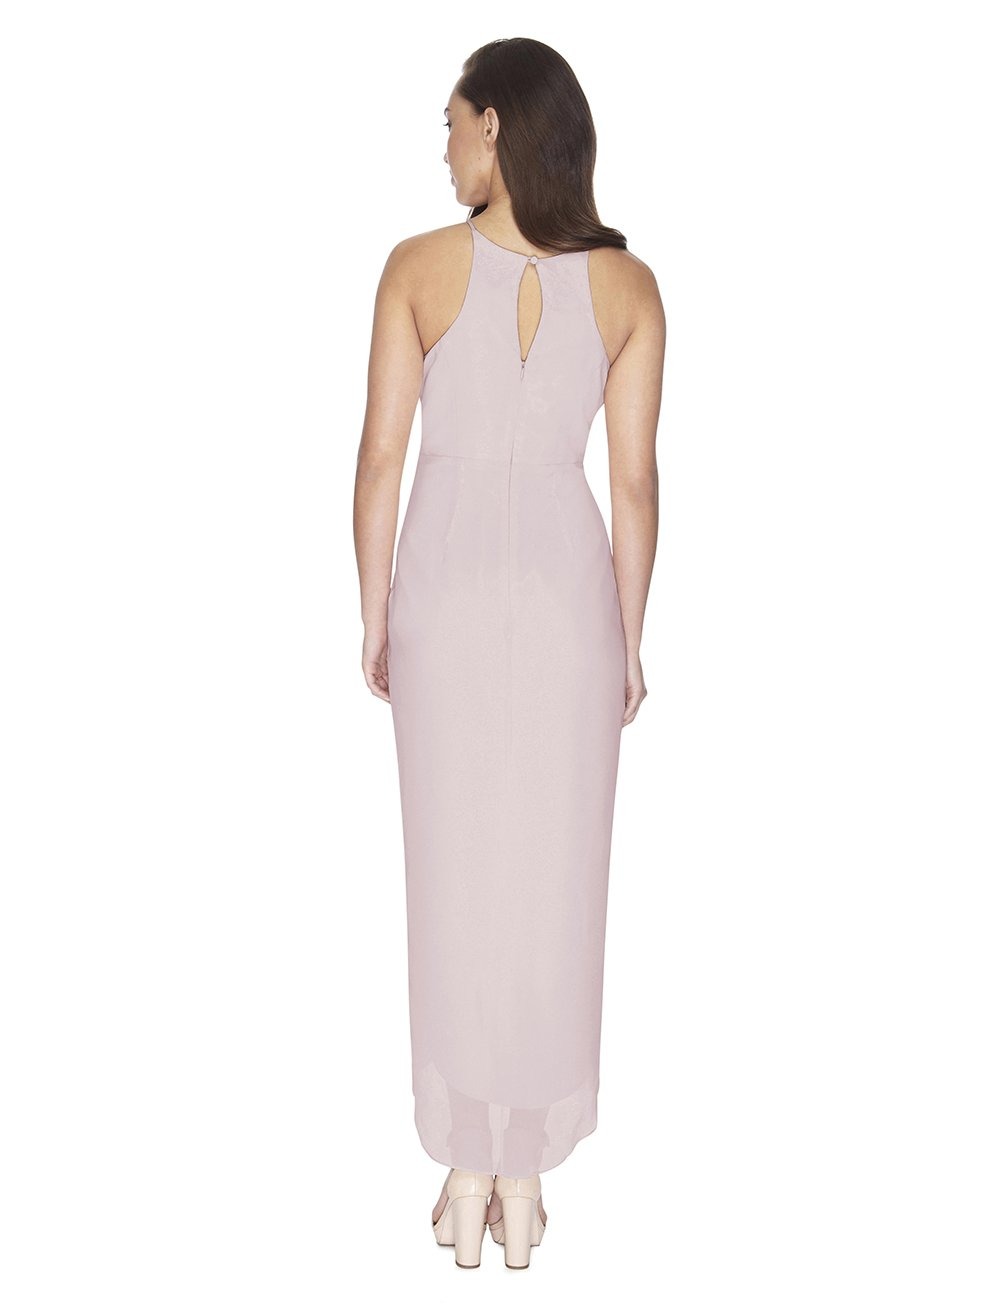 Try Before You Buy Bridesmaids Dress Skye in Tea Time